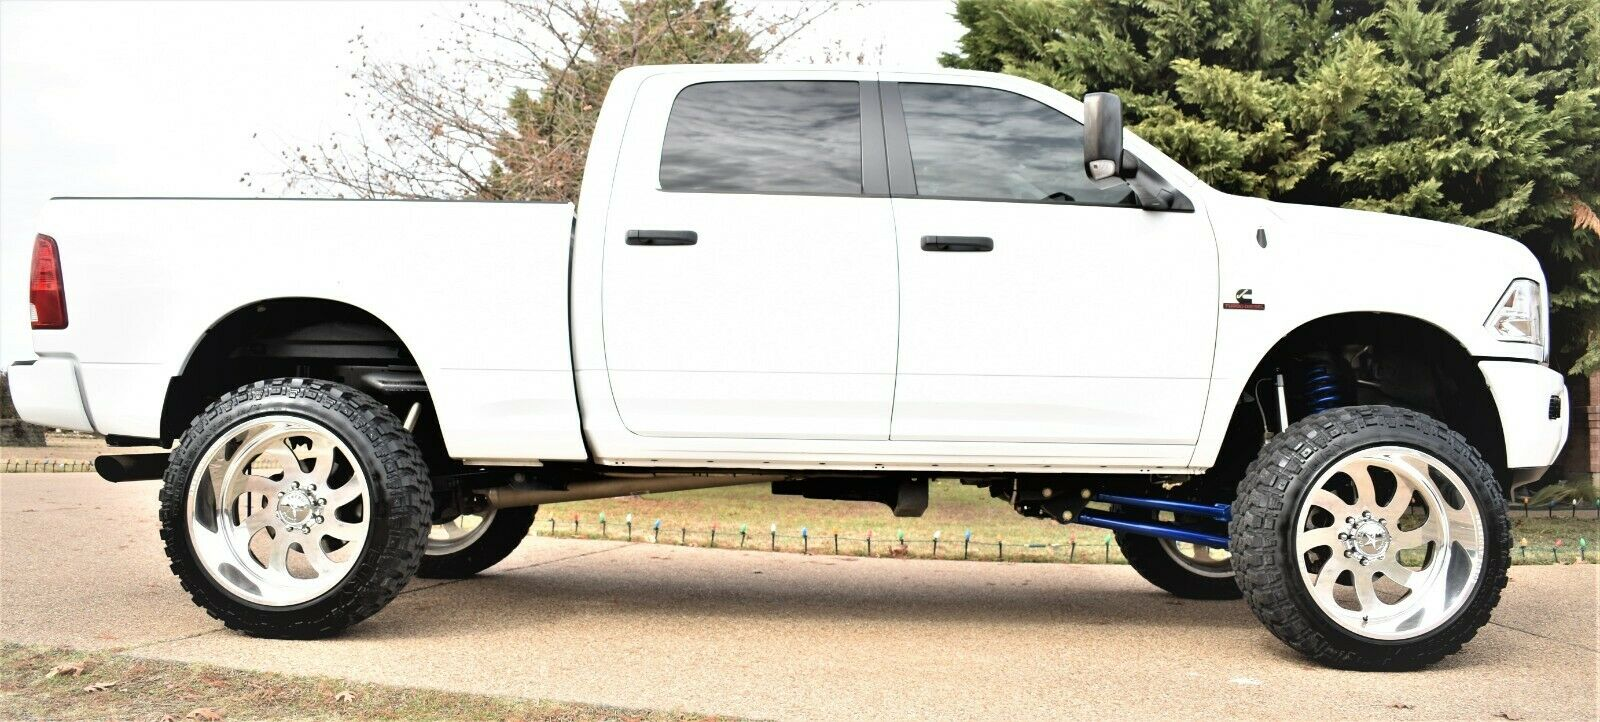 very clean 2016 Dodge Ram 2500 lifted